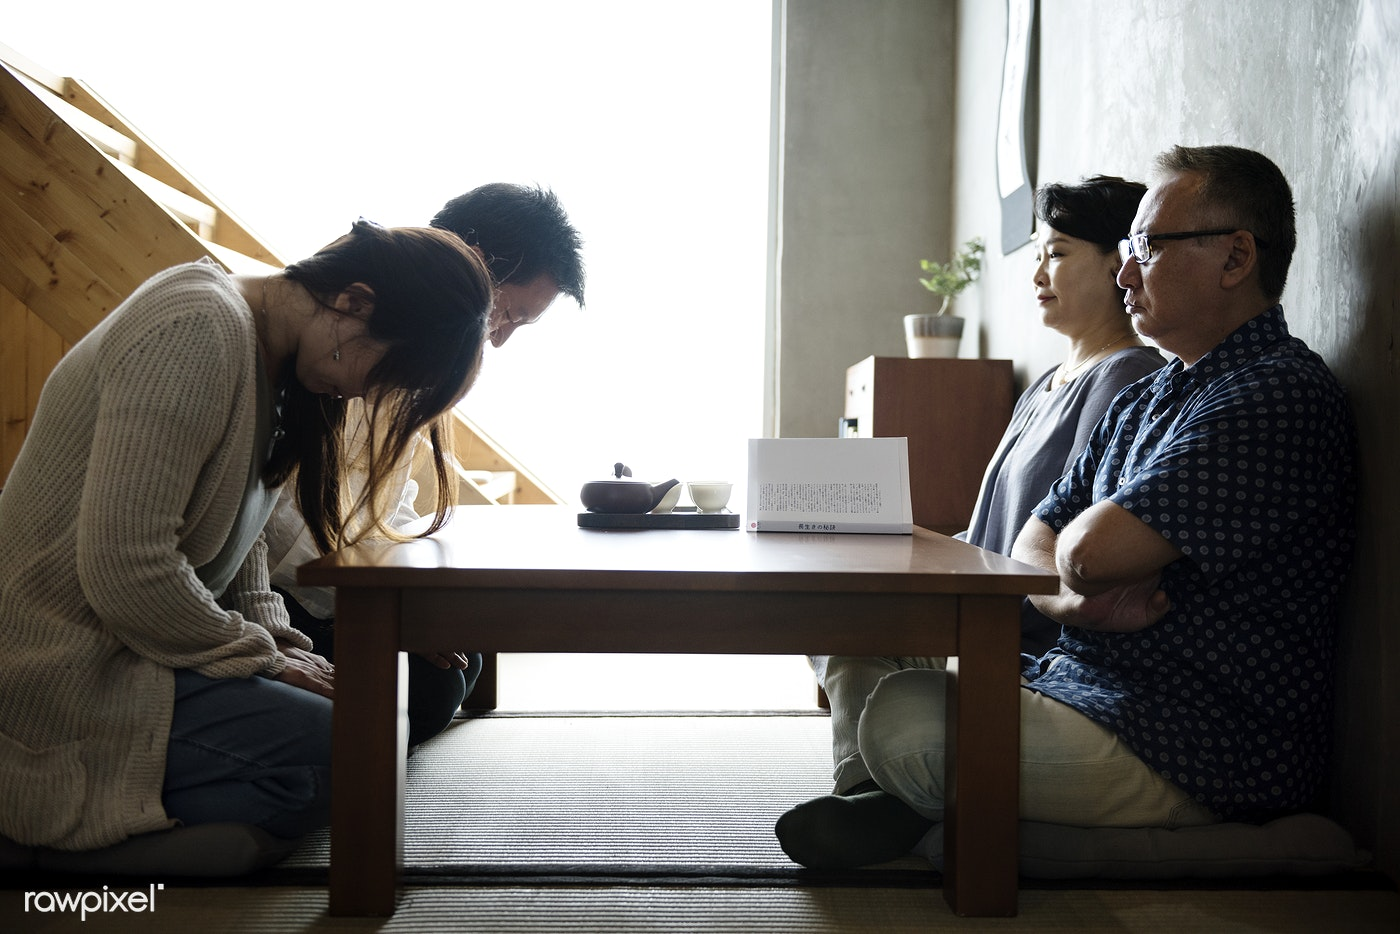 Premium royalty free image id 11359 japan asia asian bowing couple culture elderly family m4hsunfo